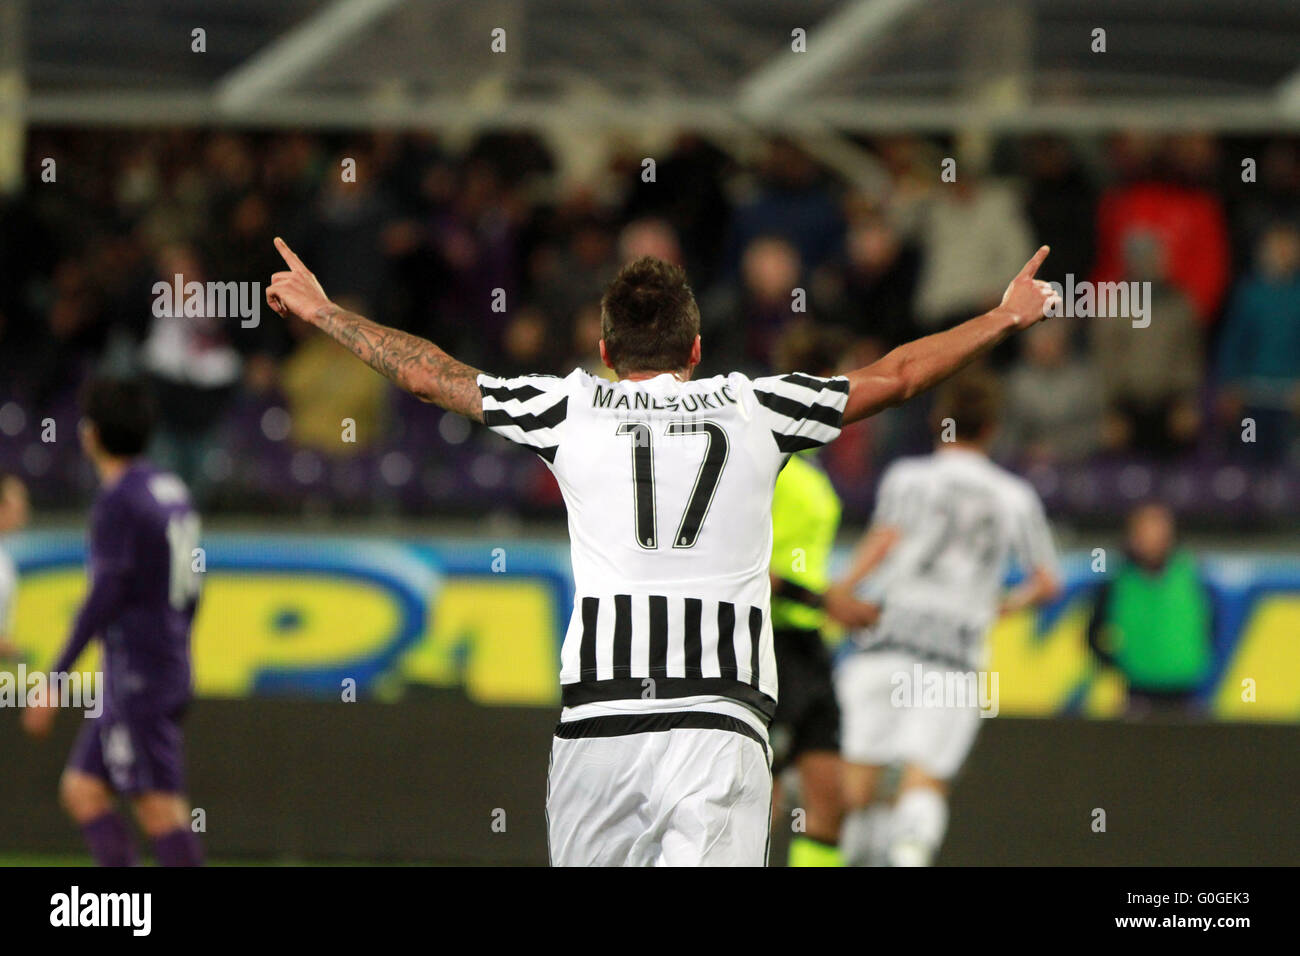 ITALY, Florence: Juventus's forward Mario Mandzukic reacts during the Italian Serie A football match between - Stock Image